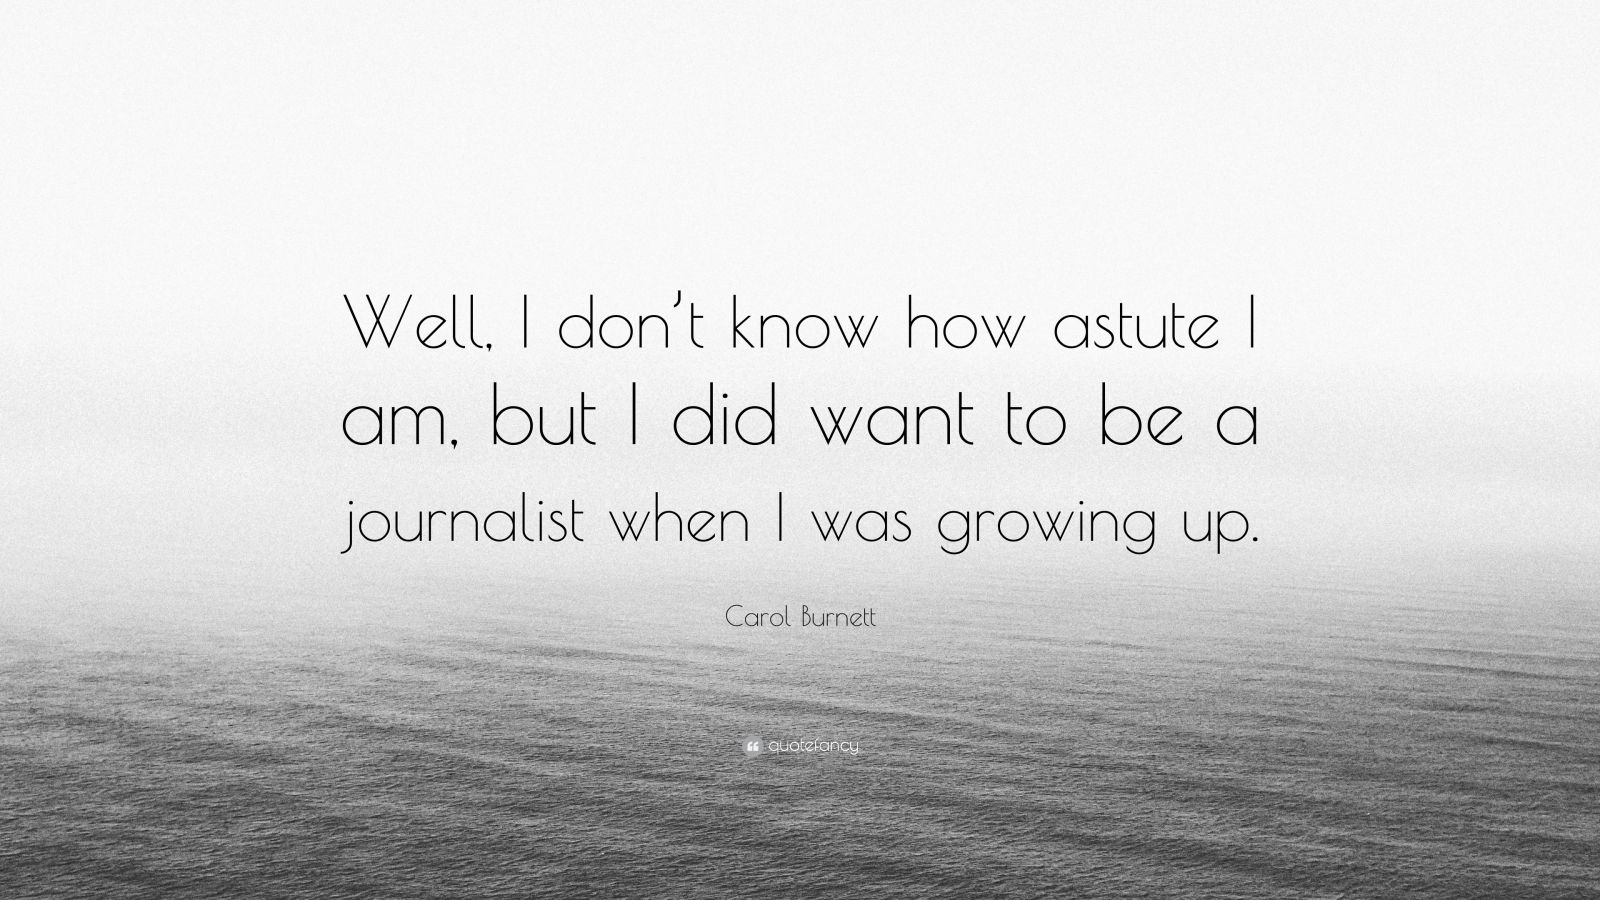 """Carol Burnett Quote: """"Well, I don't know how astute I am, but I did want to be a journalist when I was growing up."""""""